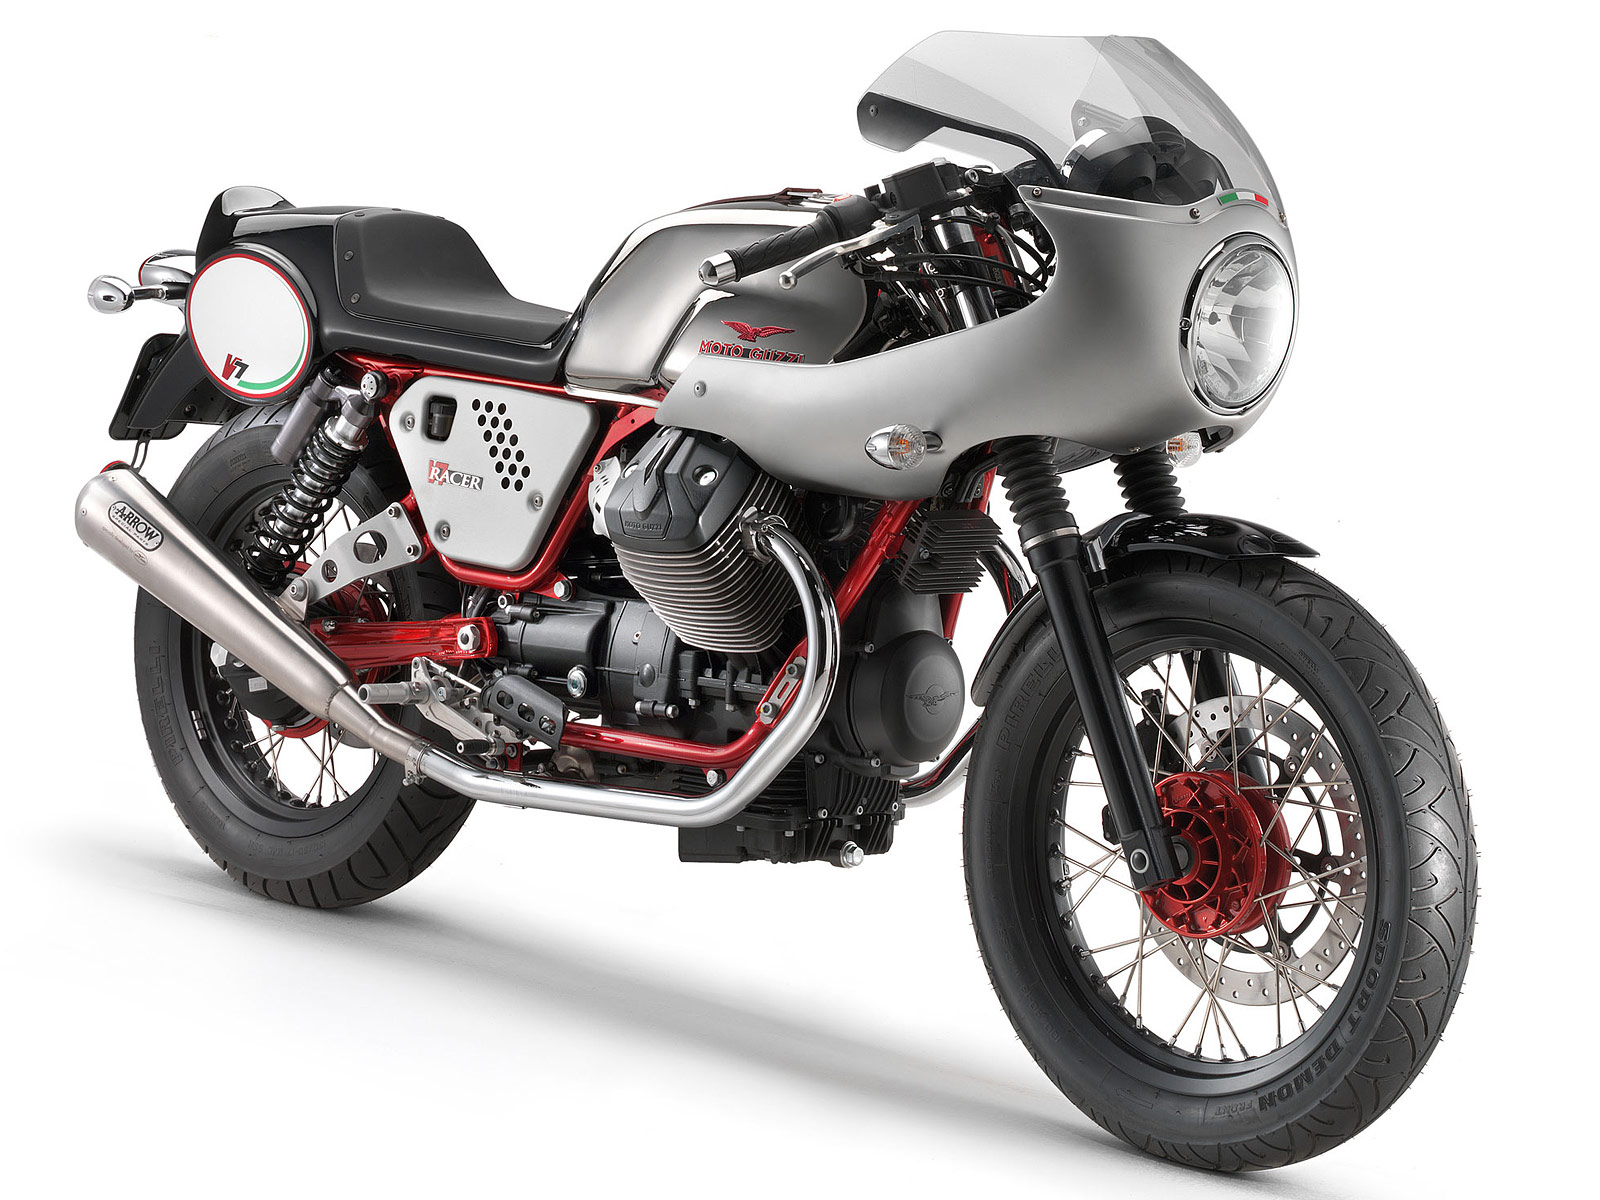 2013 moto guzzi v7 racer motorcyle photos and specifications. Black Bedroom Furniture Sets. Home Design Ideas